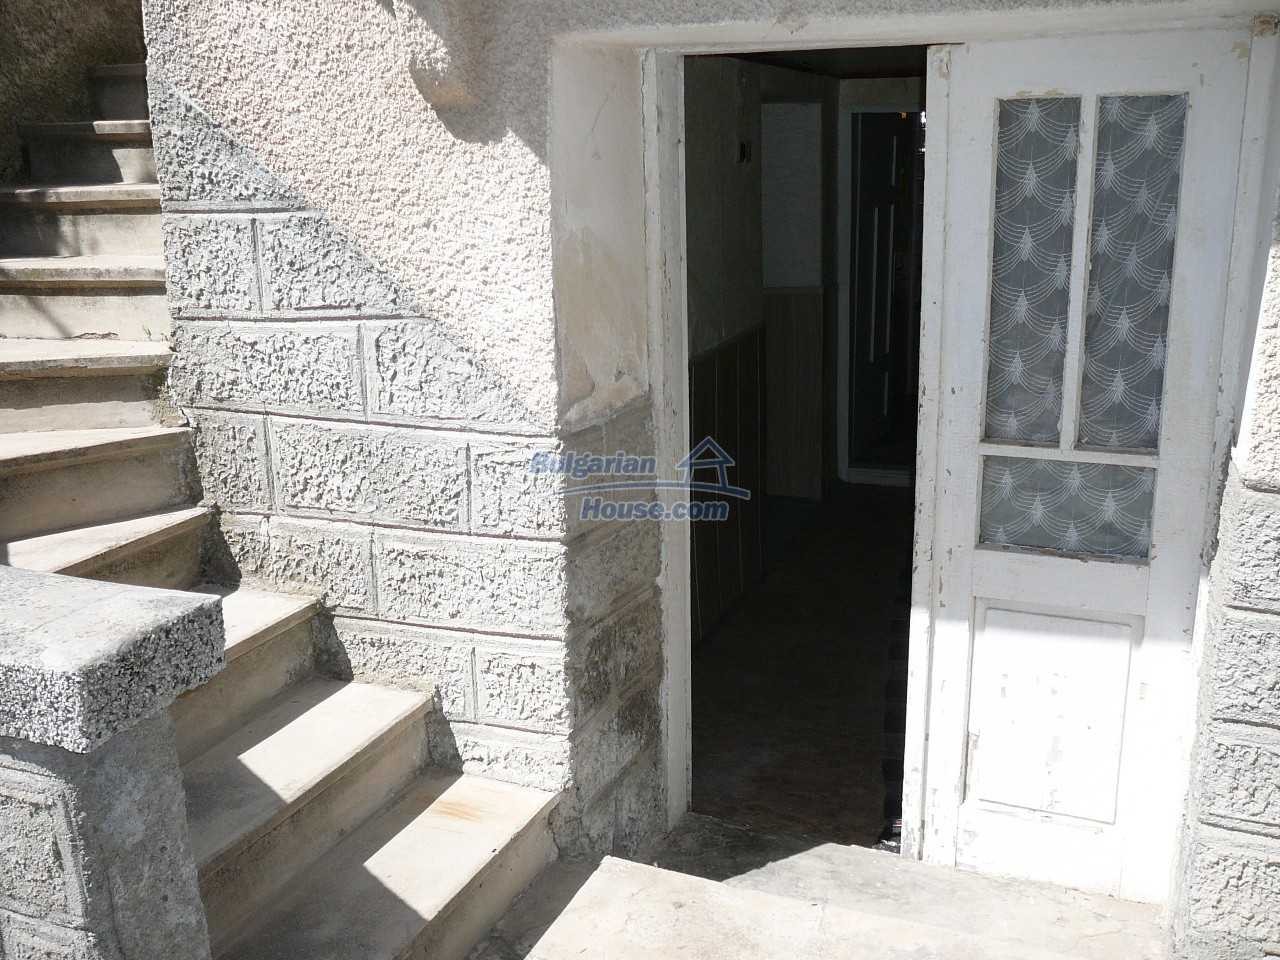 12527:4 - House  in good condition Stara Zagora region 55km to Plovdiv